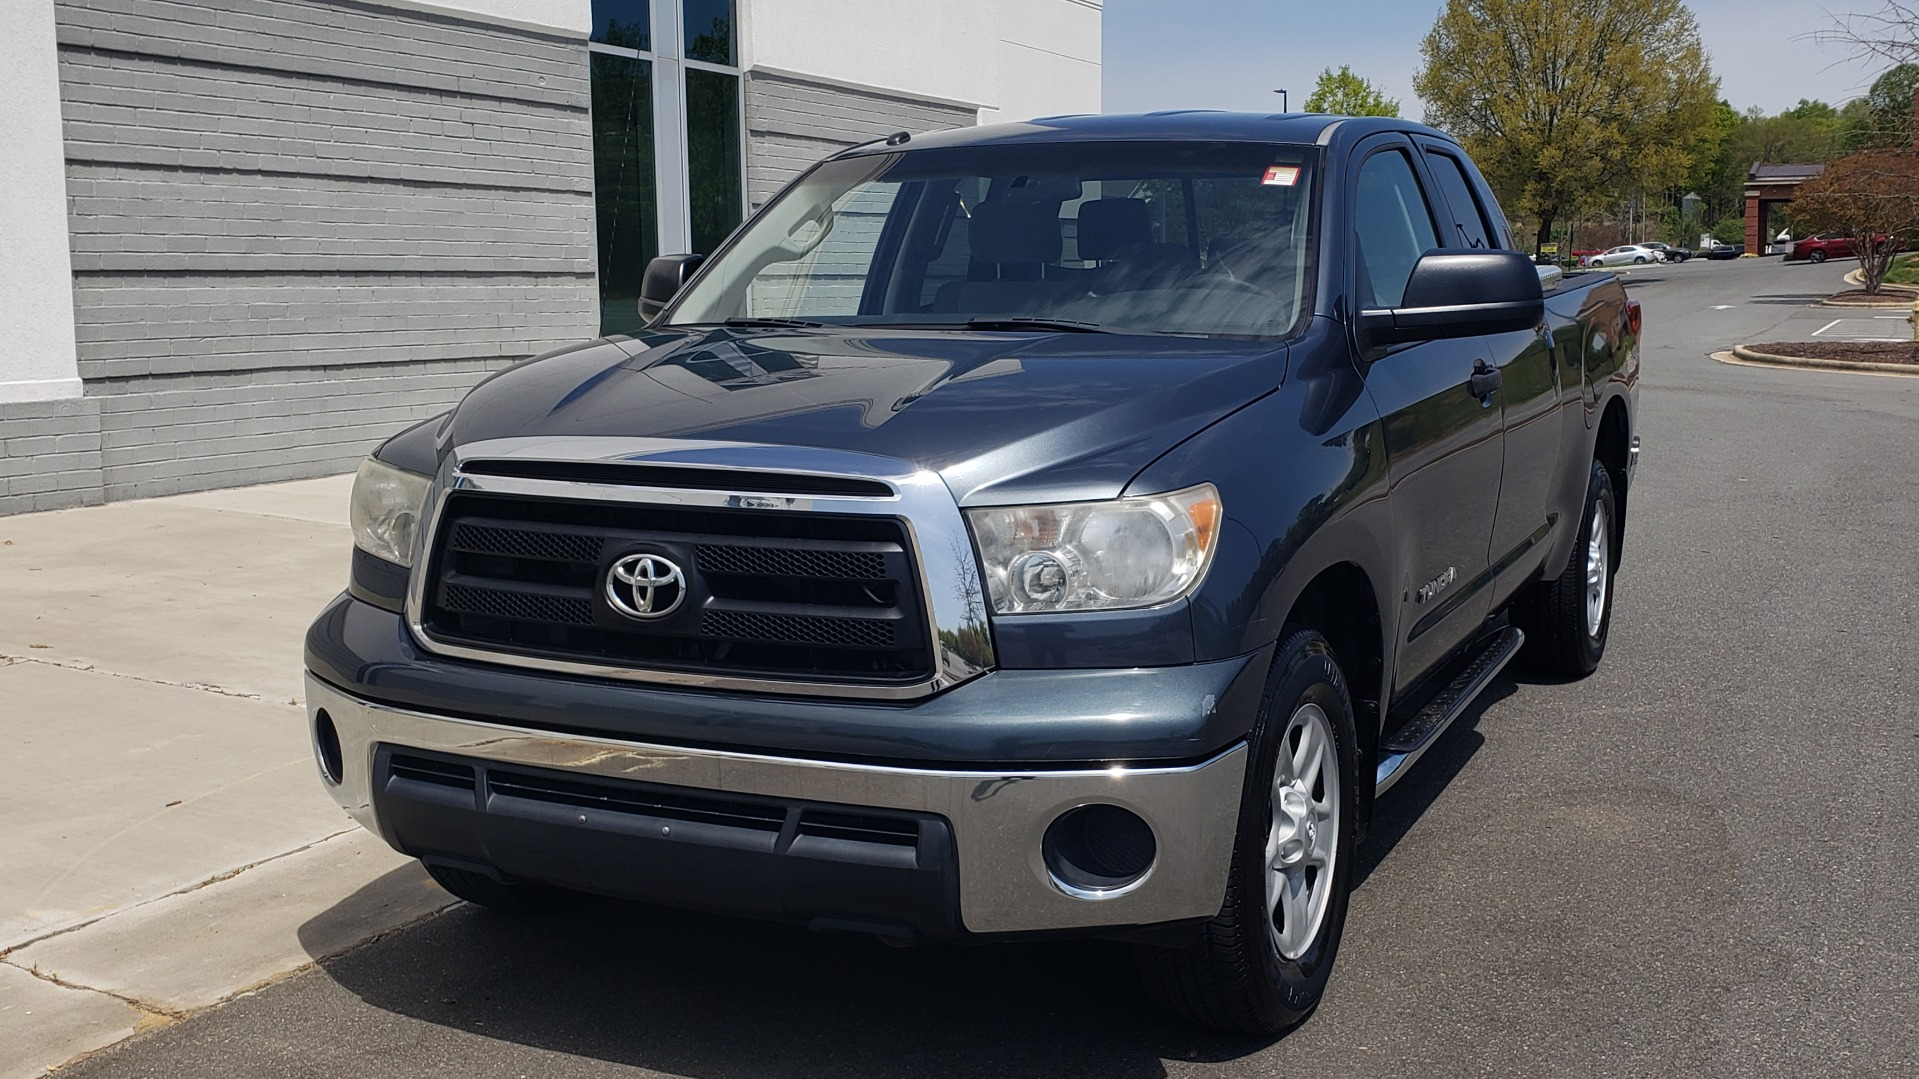 Used 2010 Toyota TUNDRA DOUBLECAB 4X4 / 4.6L V8 / 6-SPD AUTO / TOW PKG / 18IN WHEELS for sale $17,995 at Formula Imports in Charlotte NC 28227 2